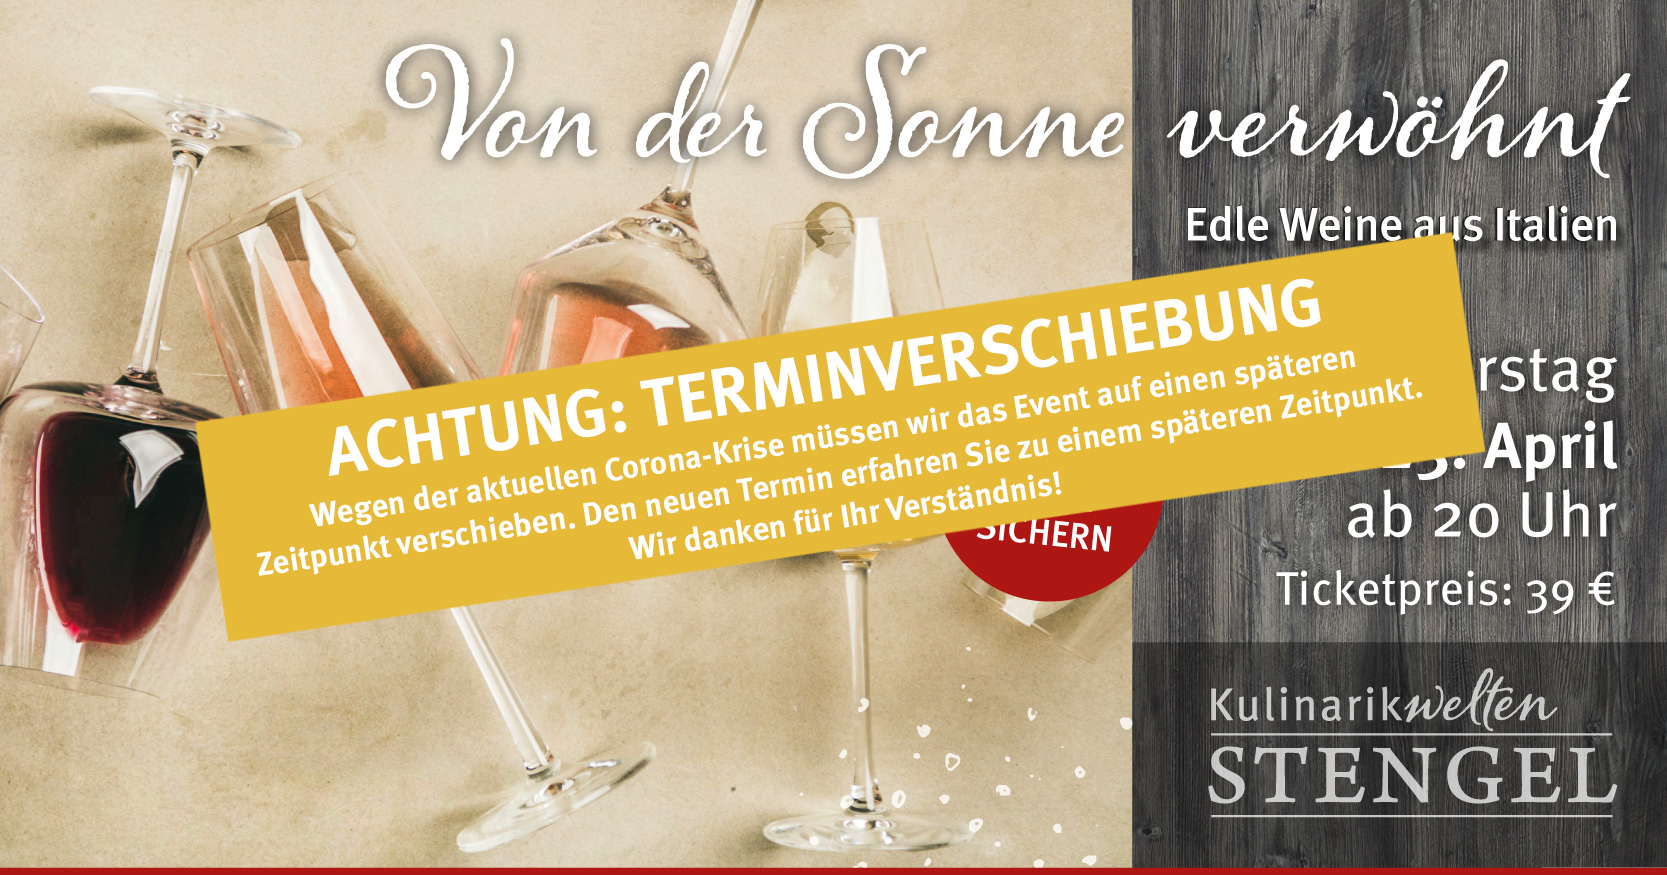 Weintasting am 23. April 2020 in den Kulinarikwelten E-Center Stengel